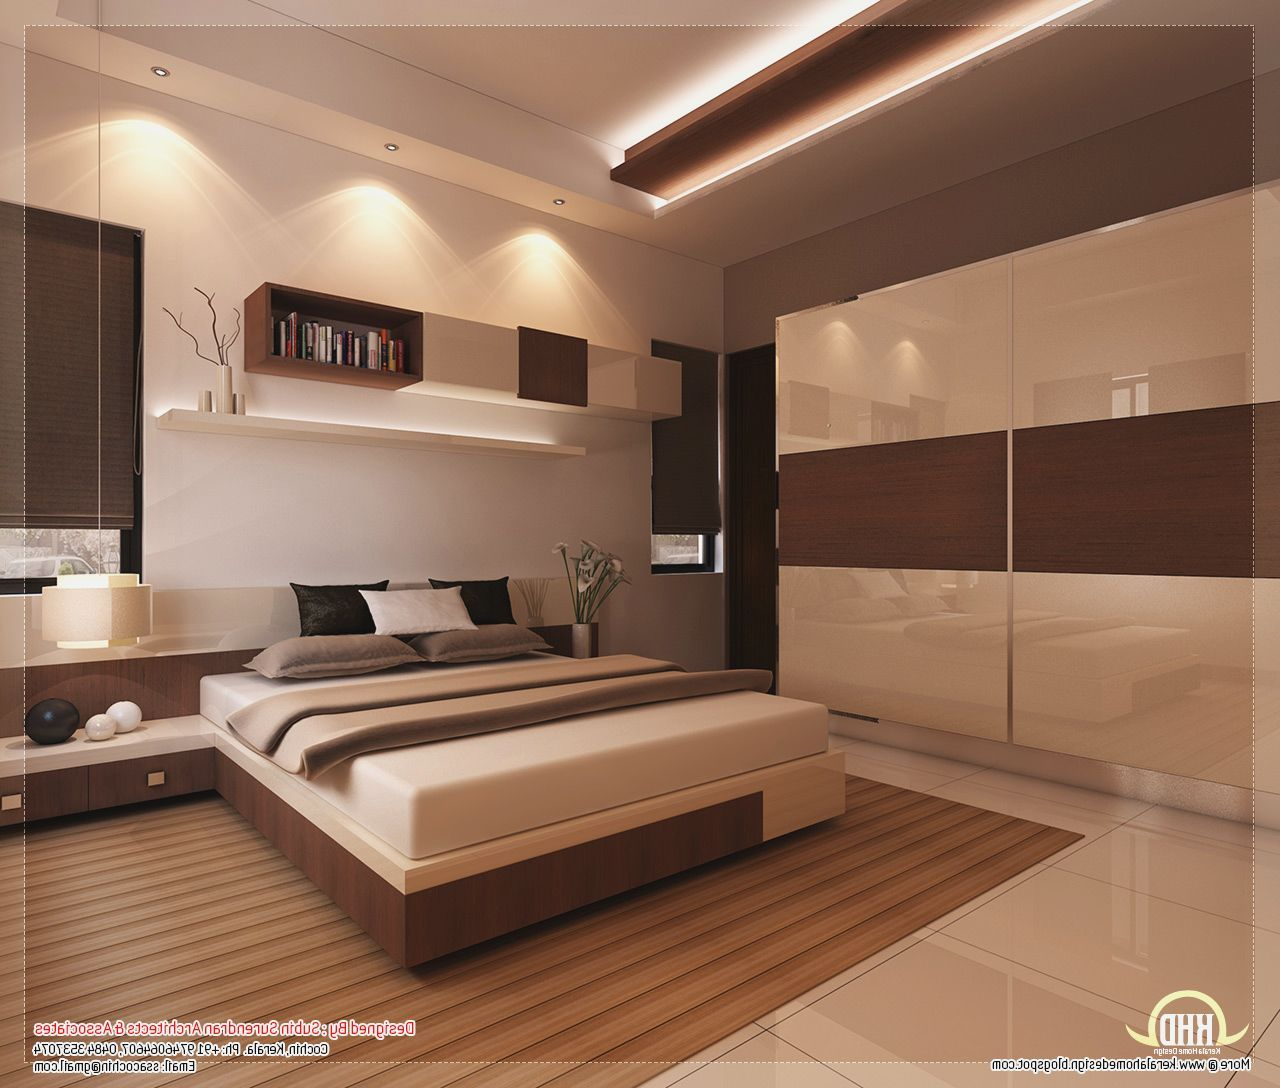 New Home Designs Latest Homes Interior Designs Studyrooms: Bedroom Designs India Low Cost More Picture Bedroom